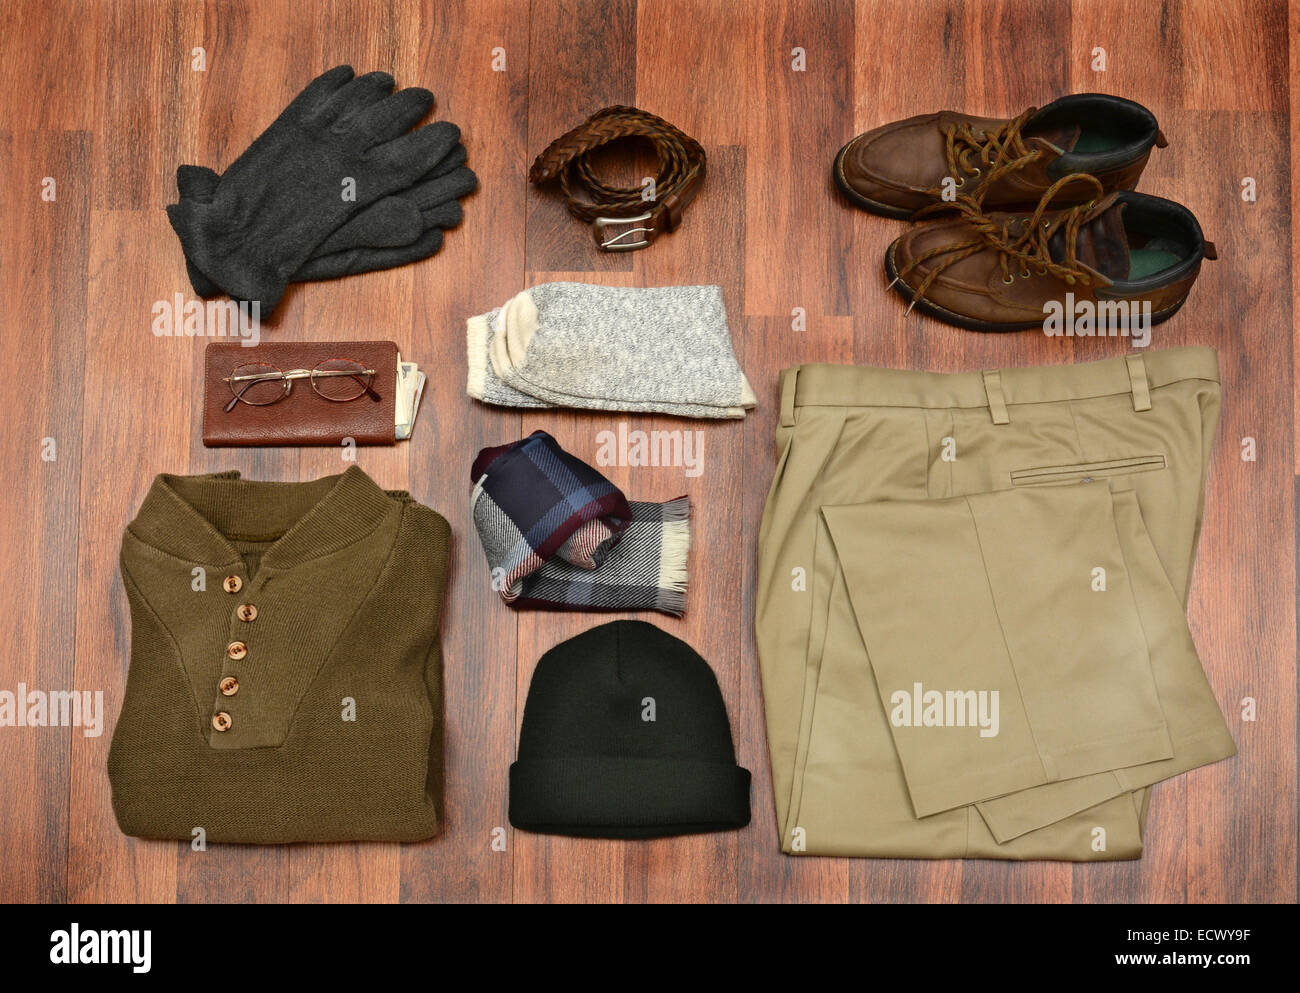 High angle shot of men's winter clothes laid out on a dark wood floor. Items include, Sweater, Scarf, Gloves, - Stock Image